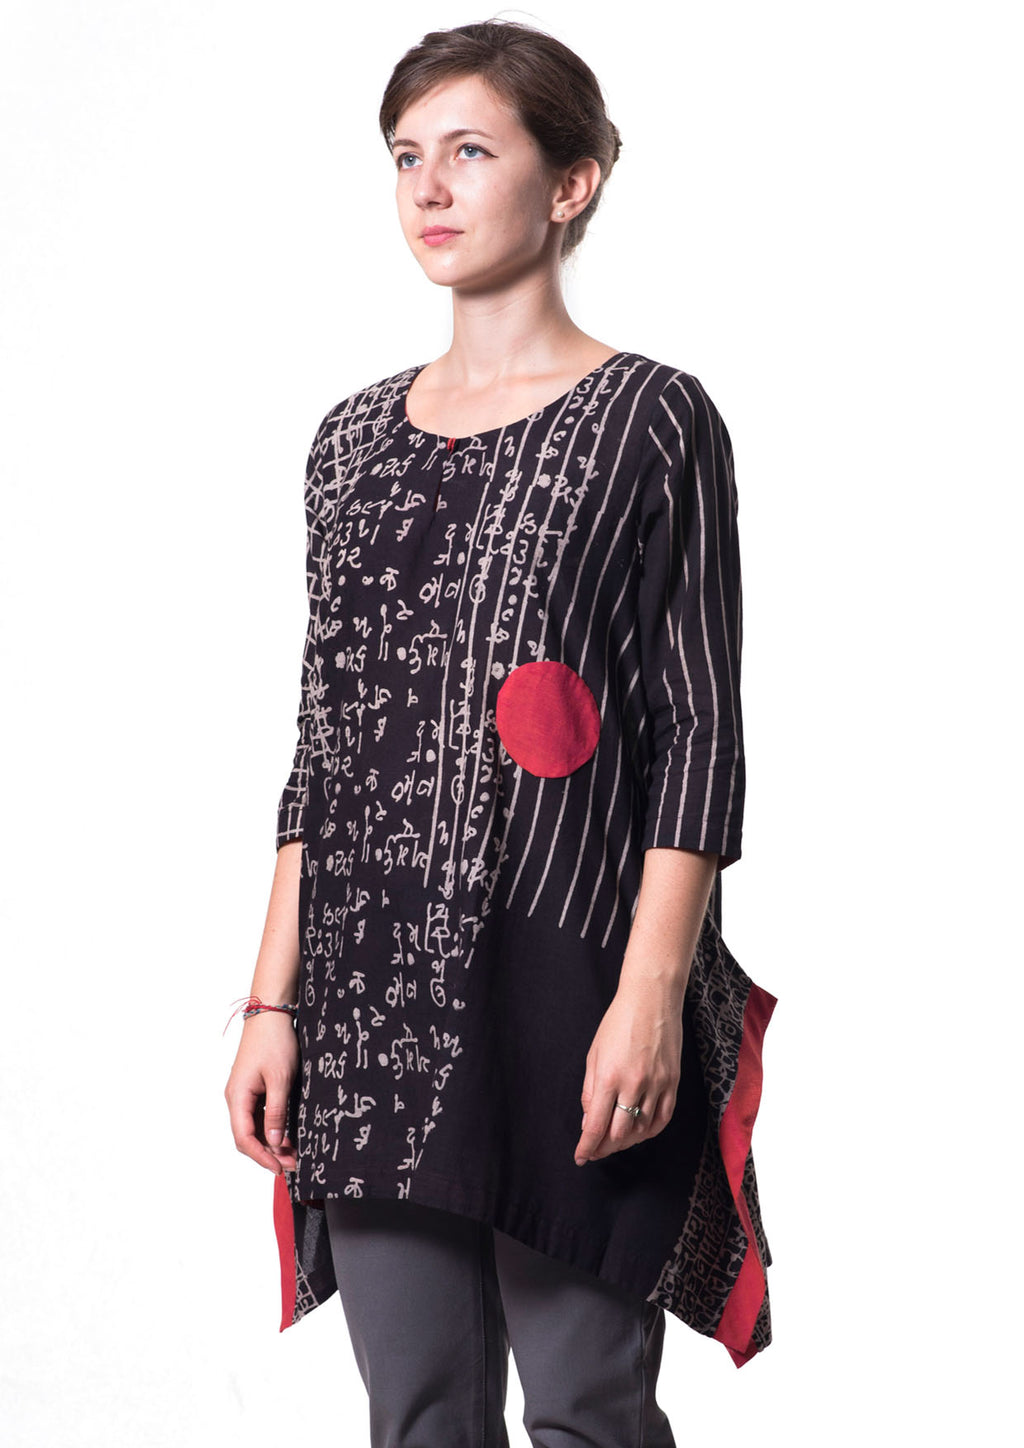 Black hand block printed Organic cotton Mal Top - PERO - Upasana Design Studio